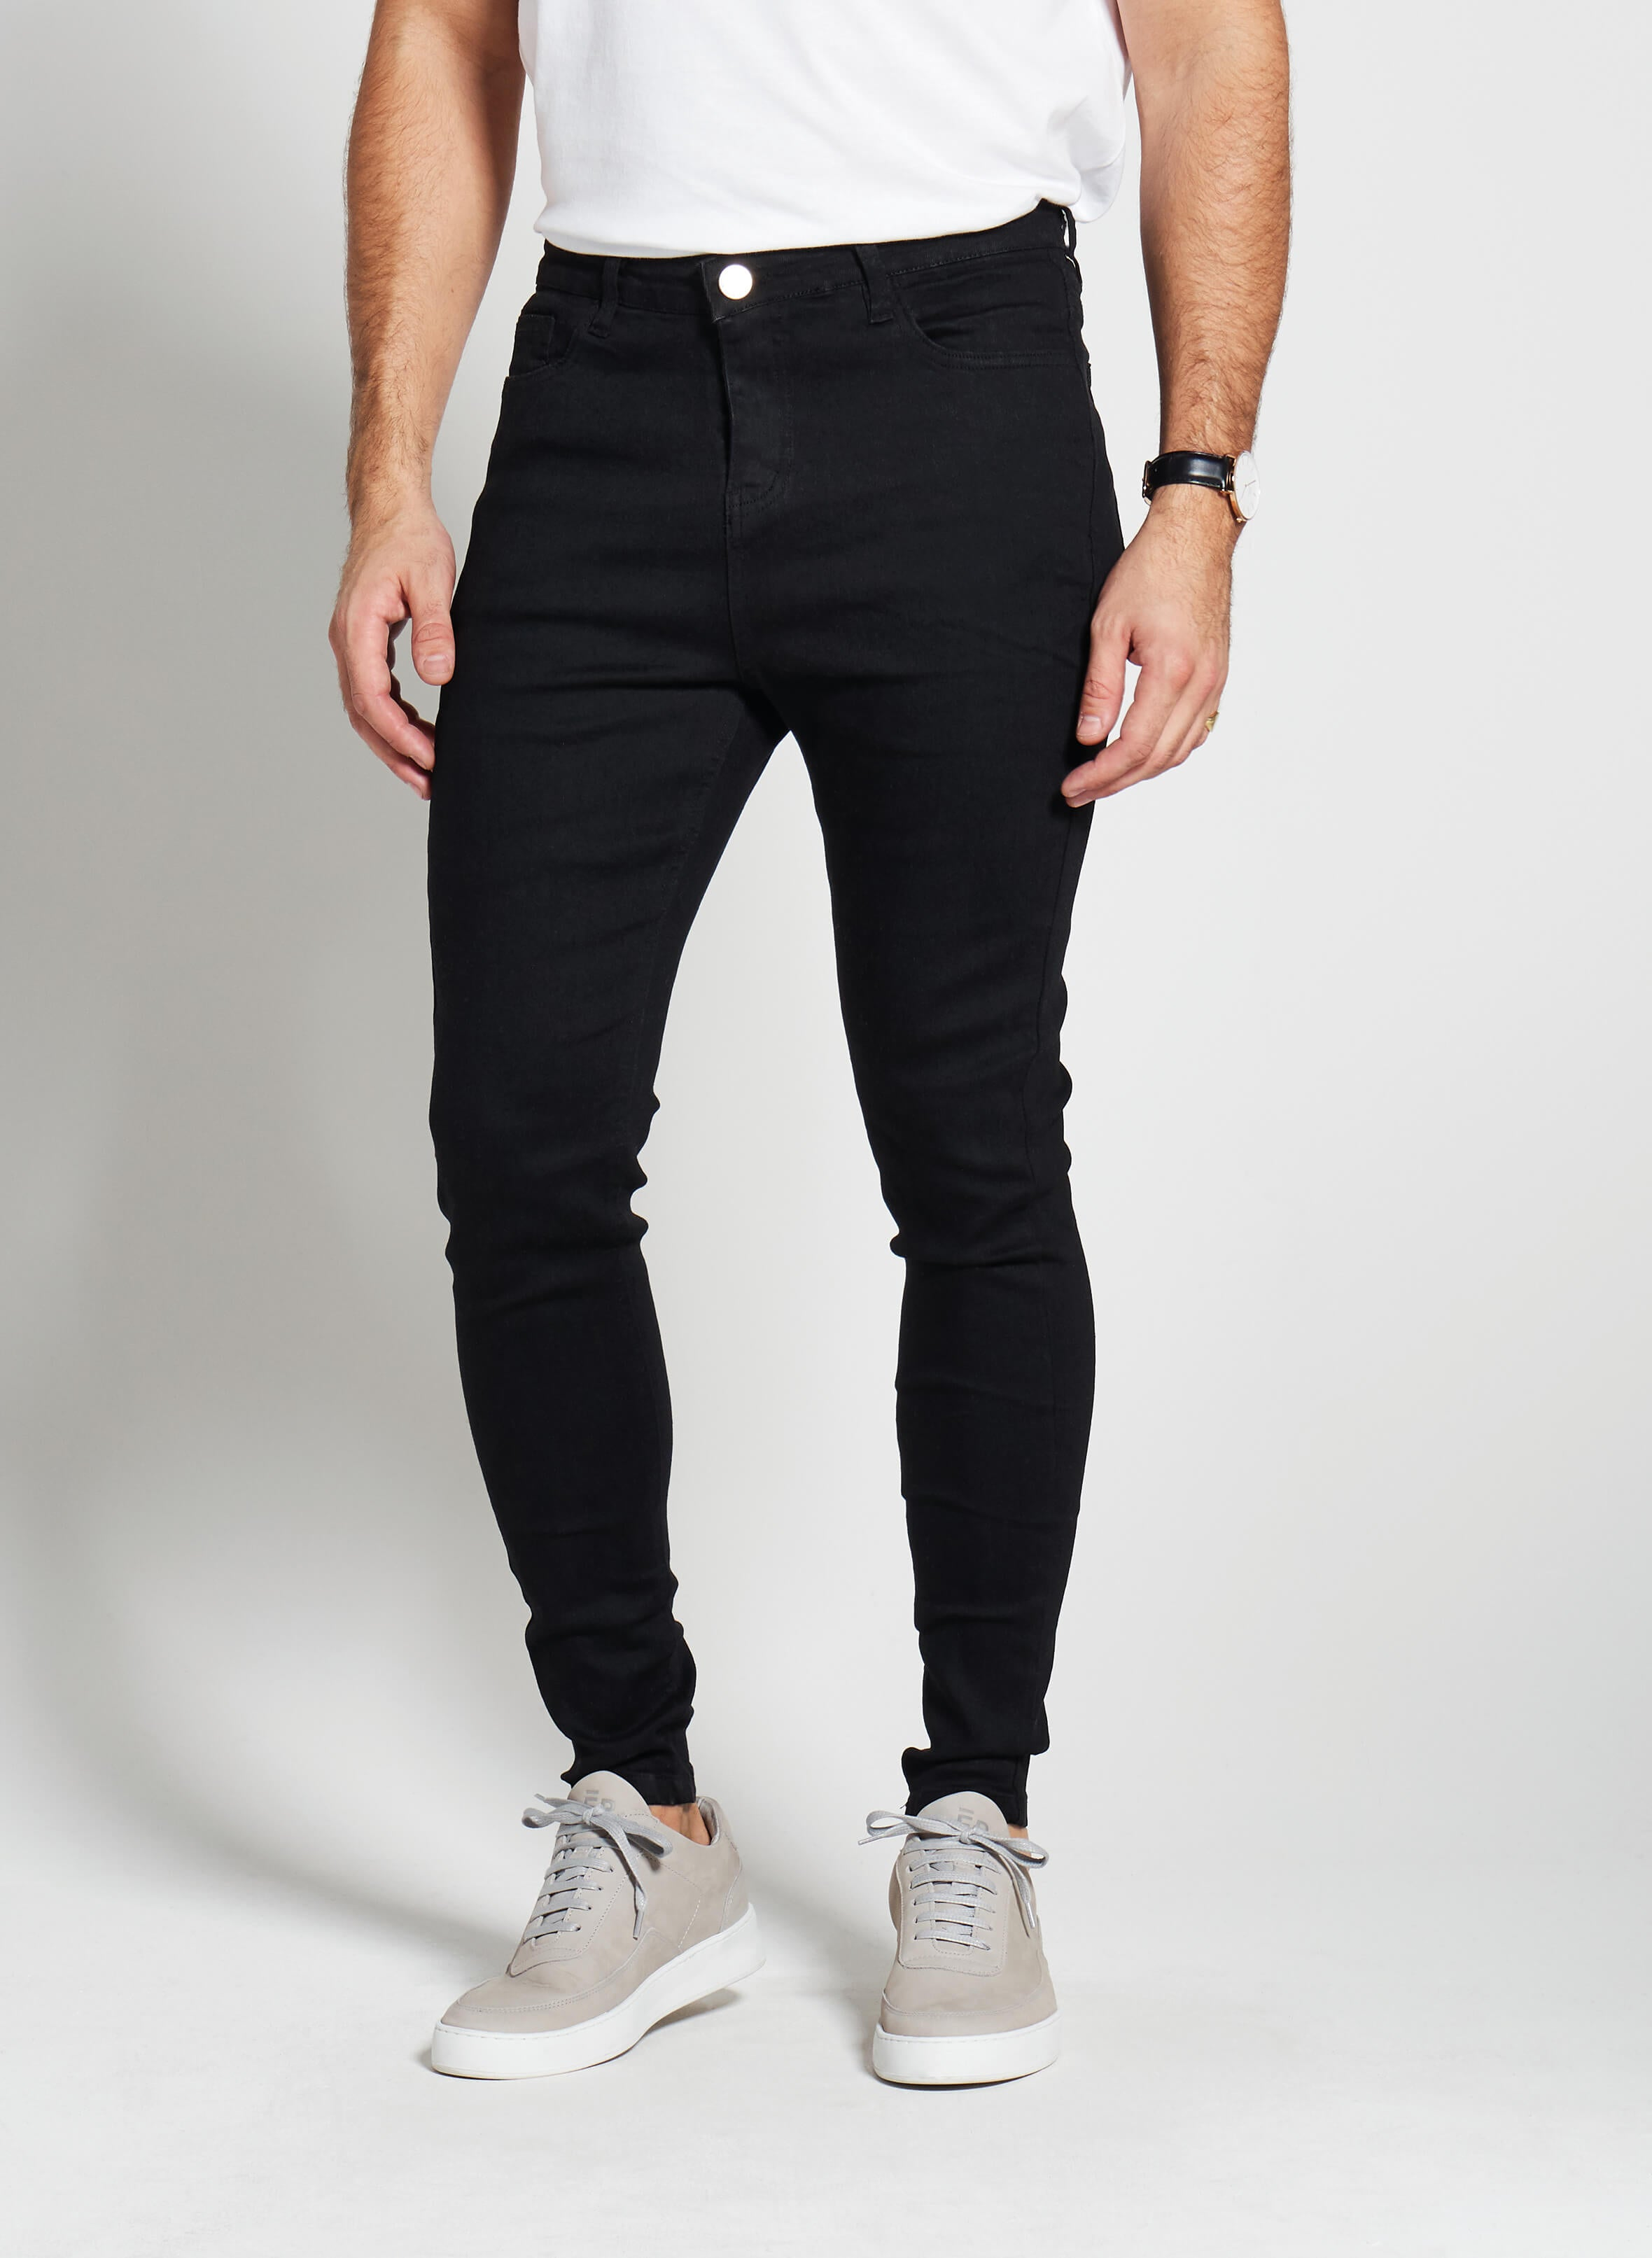 Denim Only® Spray On Jeans - Black